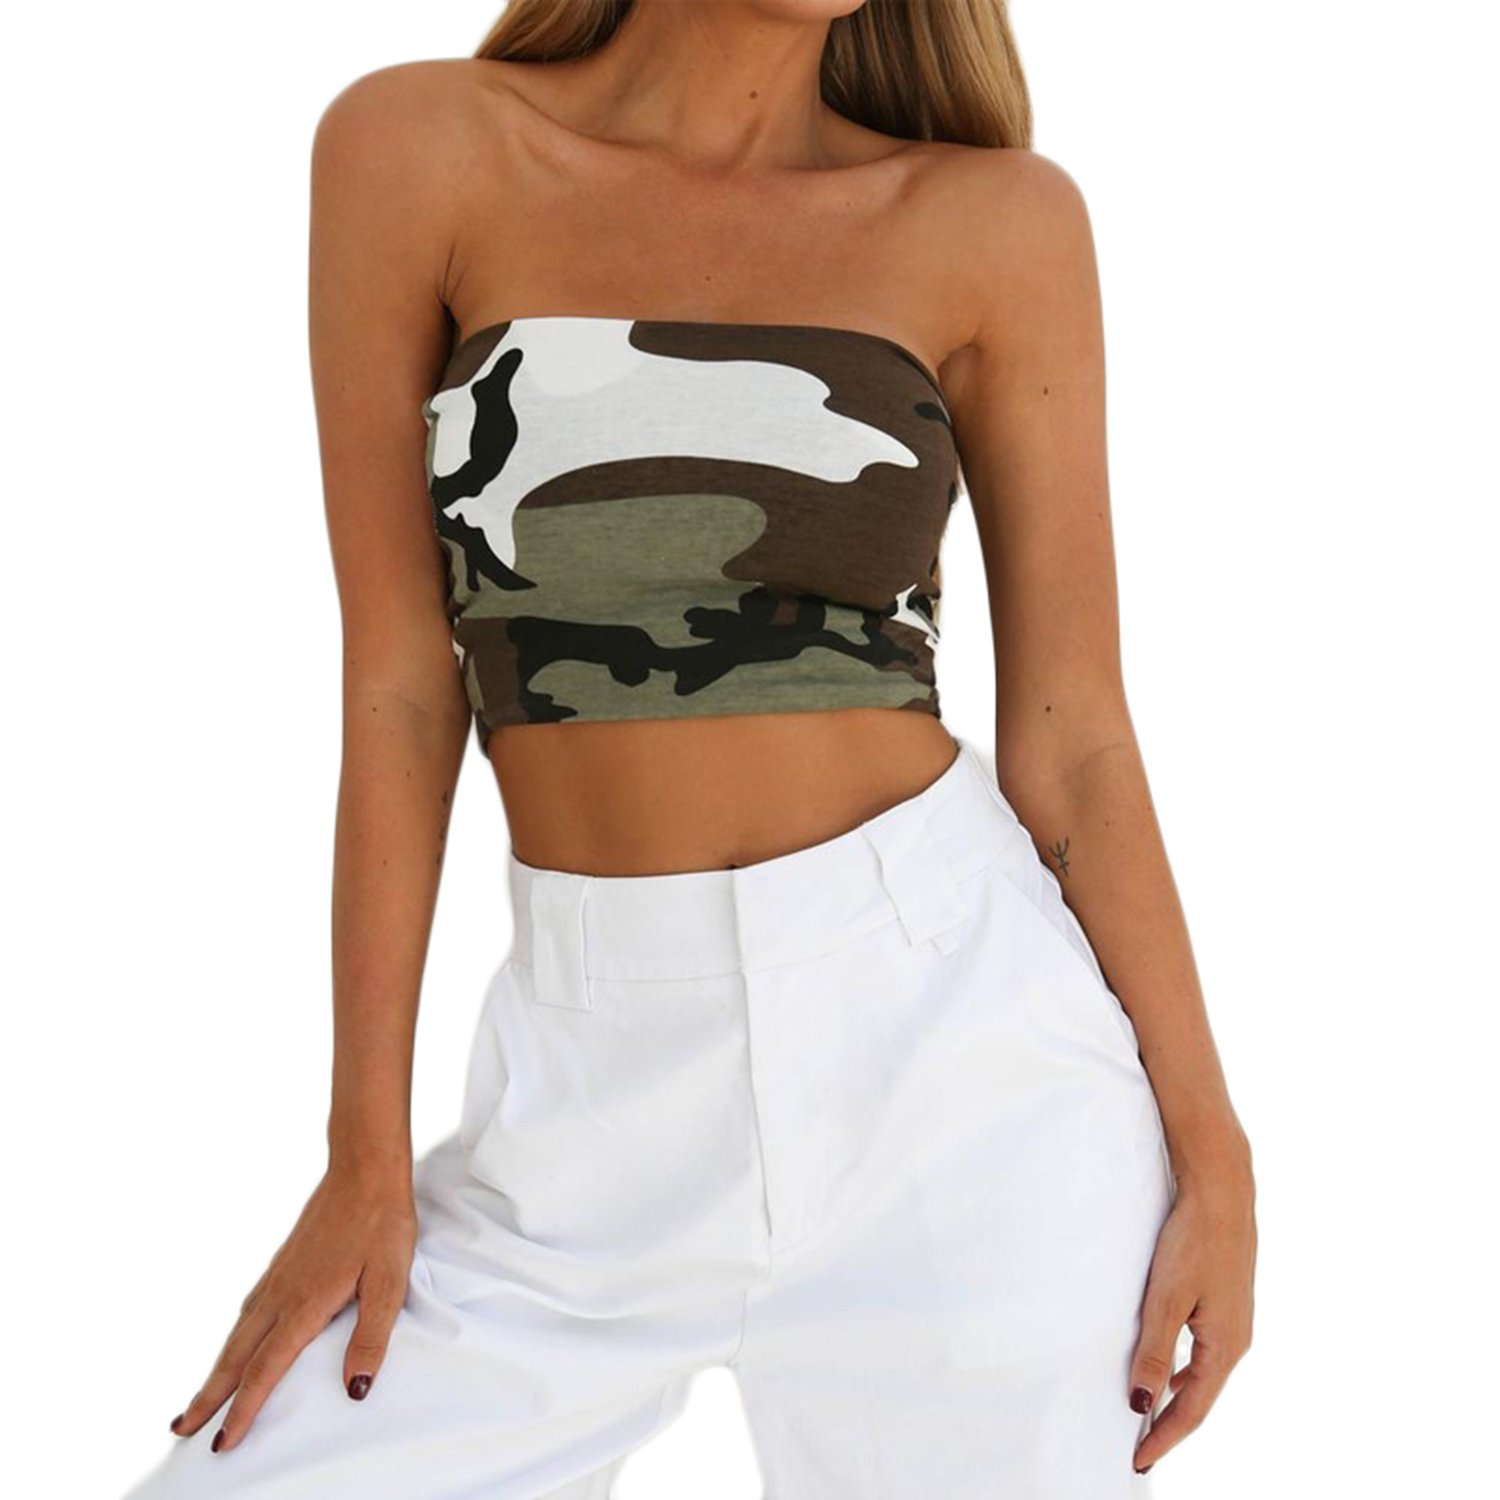 b4943bf218 WIFORNT Women Camouflage Strapless Bandeau Tube Crop Tops Bra Sexy Breast  Wrap Cami Tops at Amazon Women s Clothing store